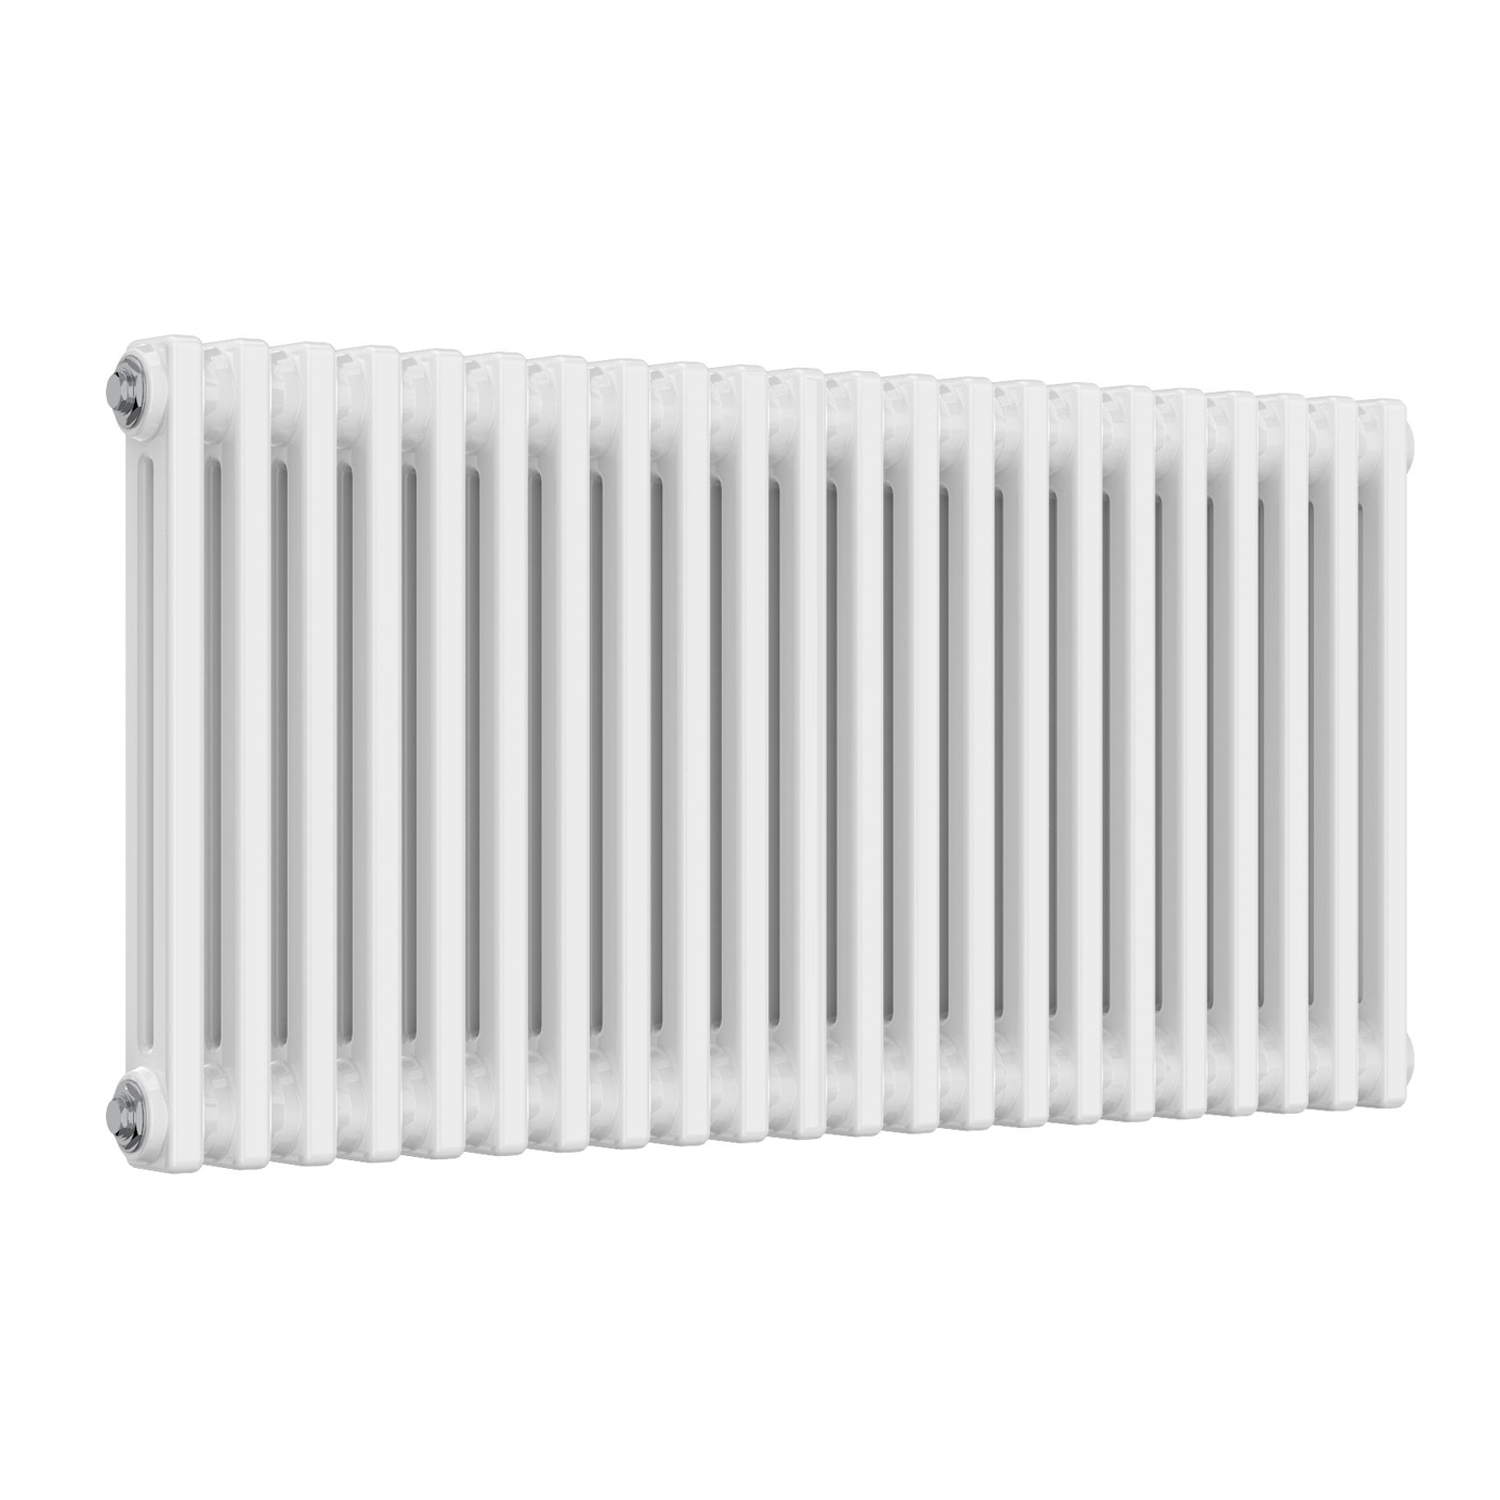 Stelrad Radical Radiator 600mm H x 2000mm W Double Convector 15mm Straight TRV-0